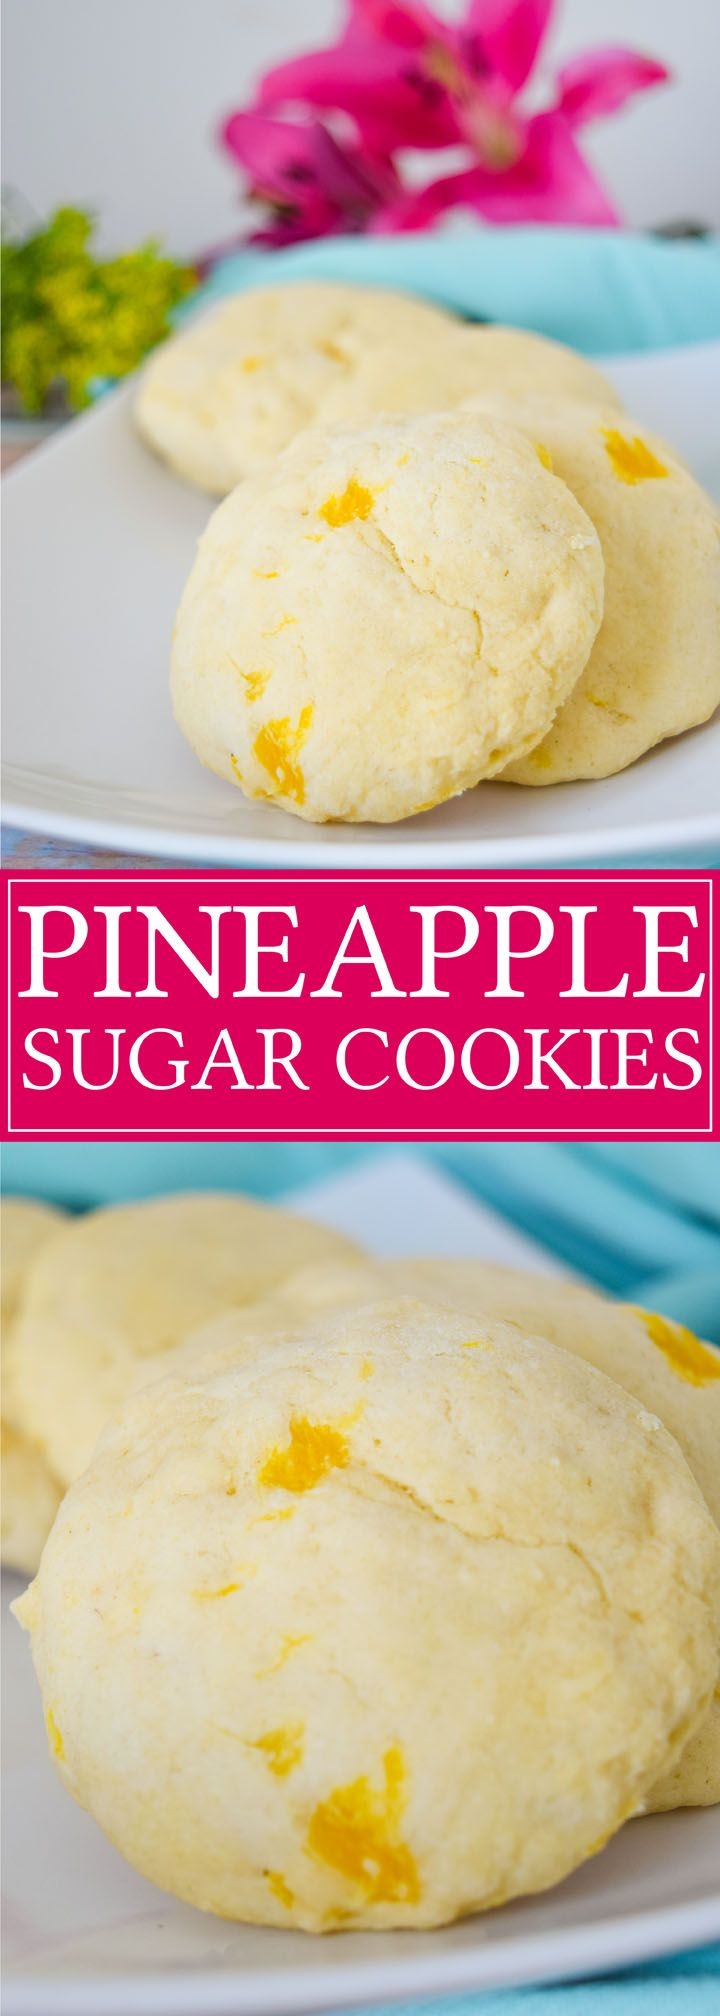 Make these pineapple sugar cookies as a fun alternative to your regular recipe! They are soft and moist with just a hint of pineapple flavor!